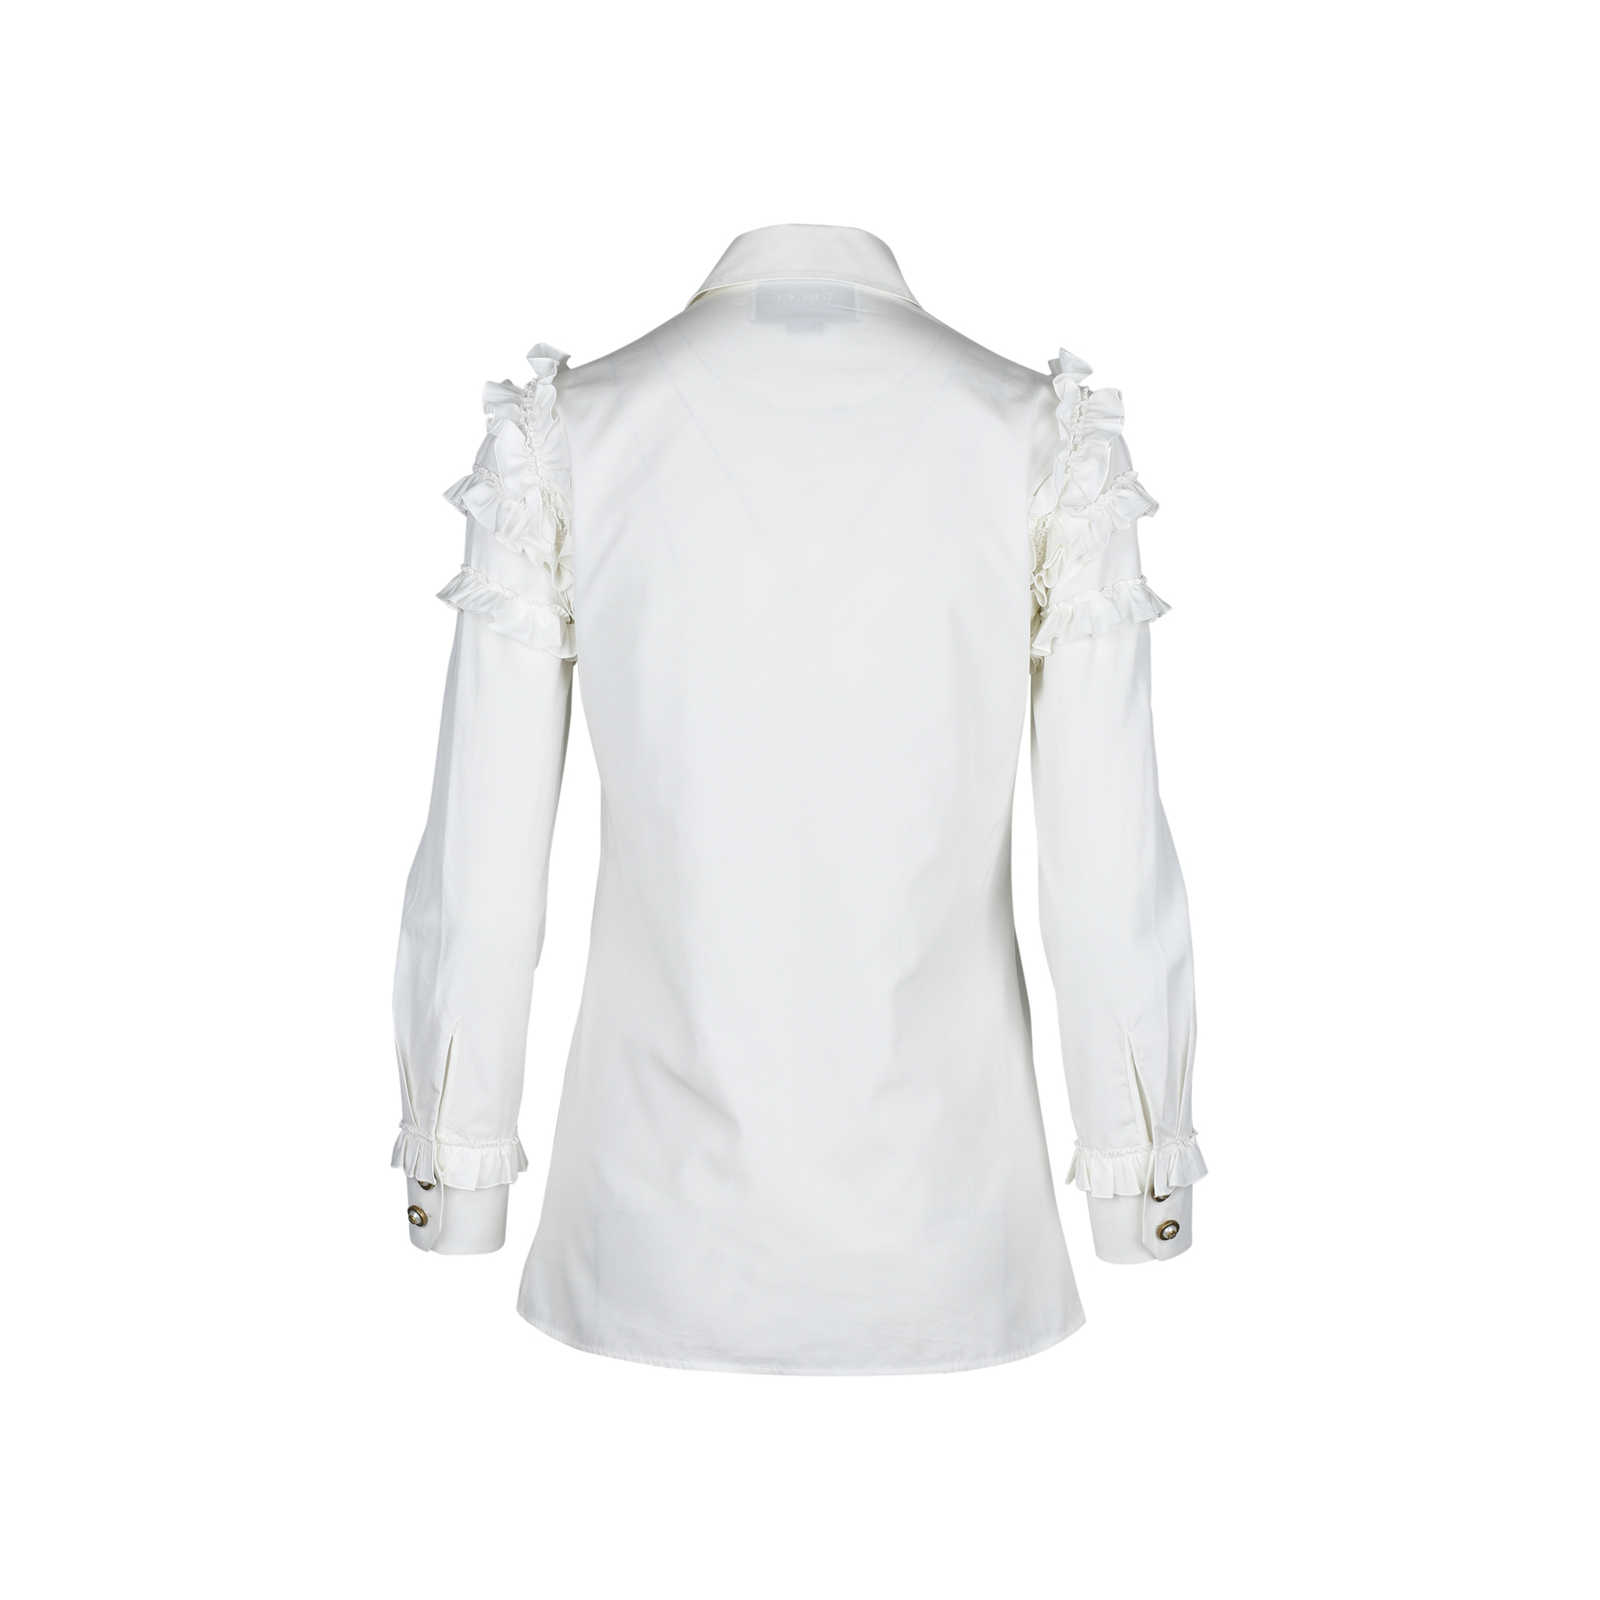 65436beb453 ... Authentic Second Hand Gucci Ruffled Sleeve Shirt (PSS-051-00222) -  Thumbnail ...